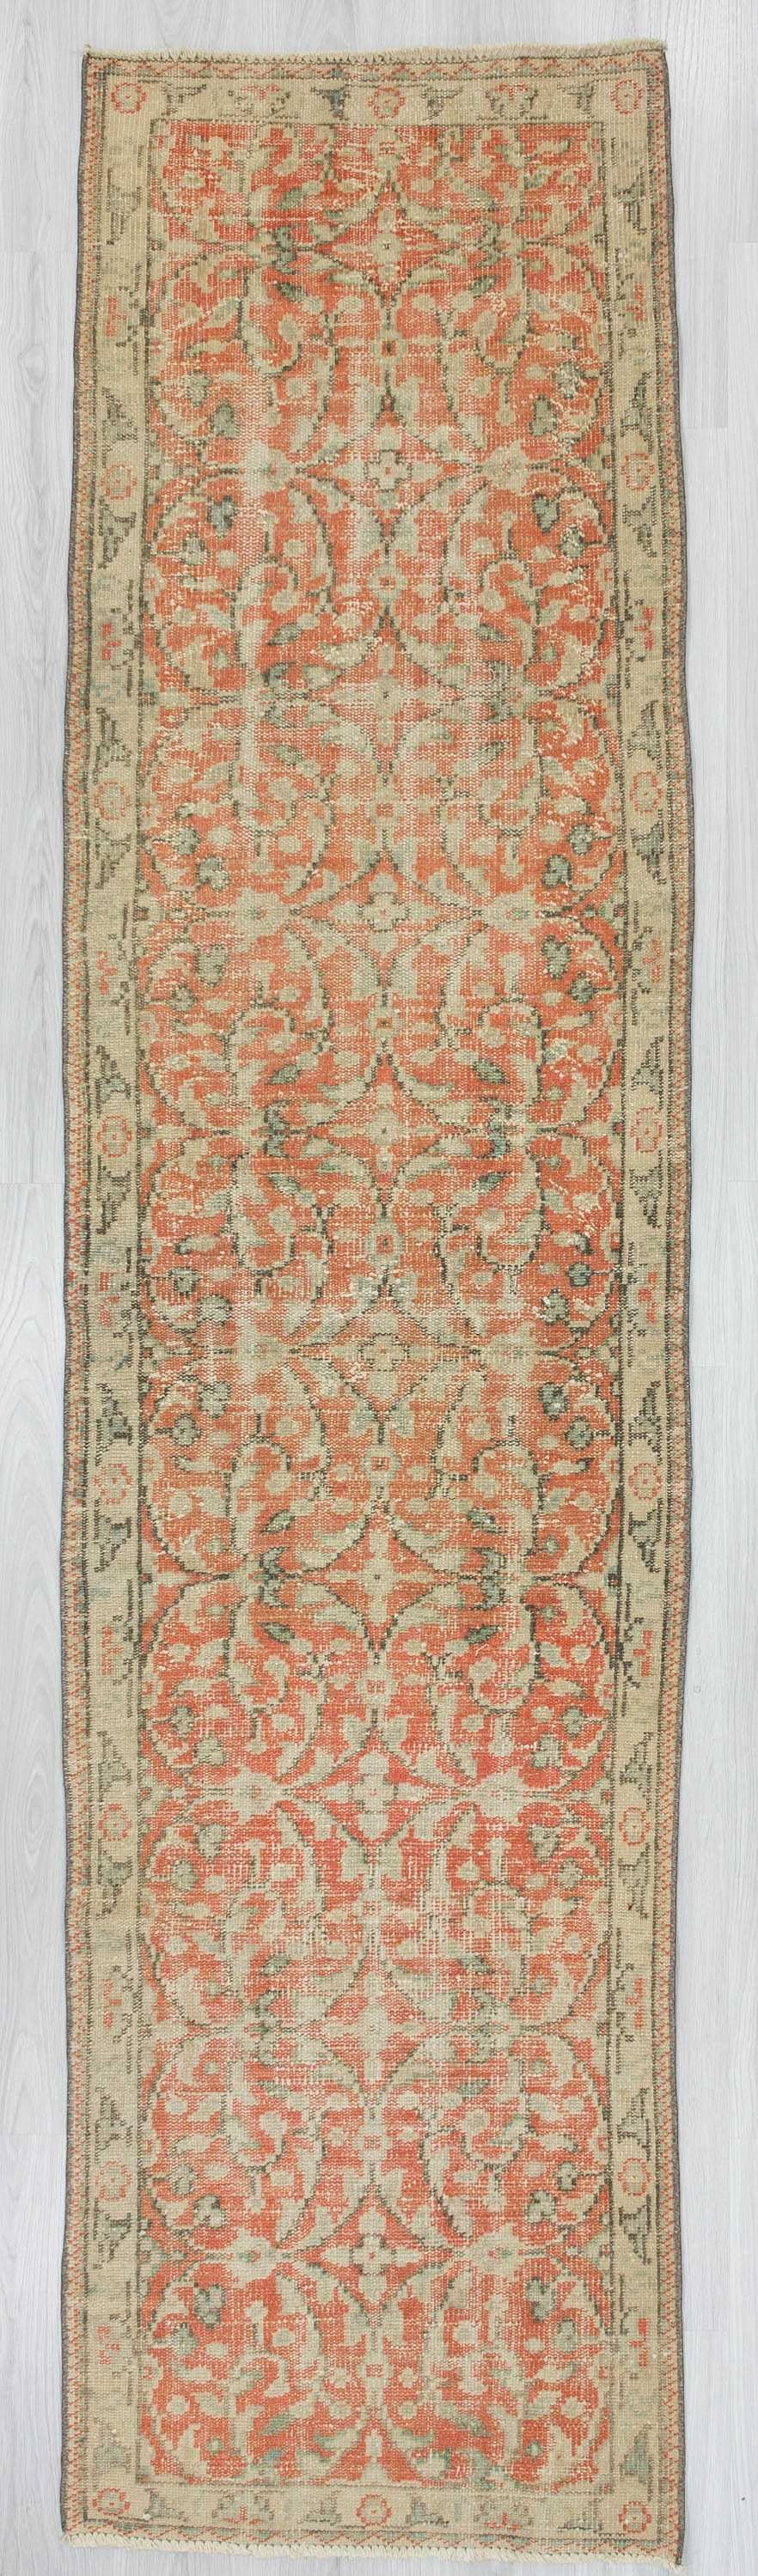 runners moms kitchen turkish rugs hallway rug fullxfull gift beige runner distressed listing washed il out